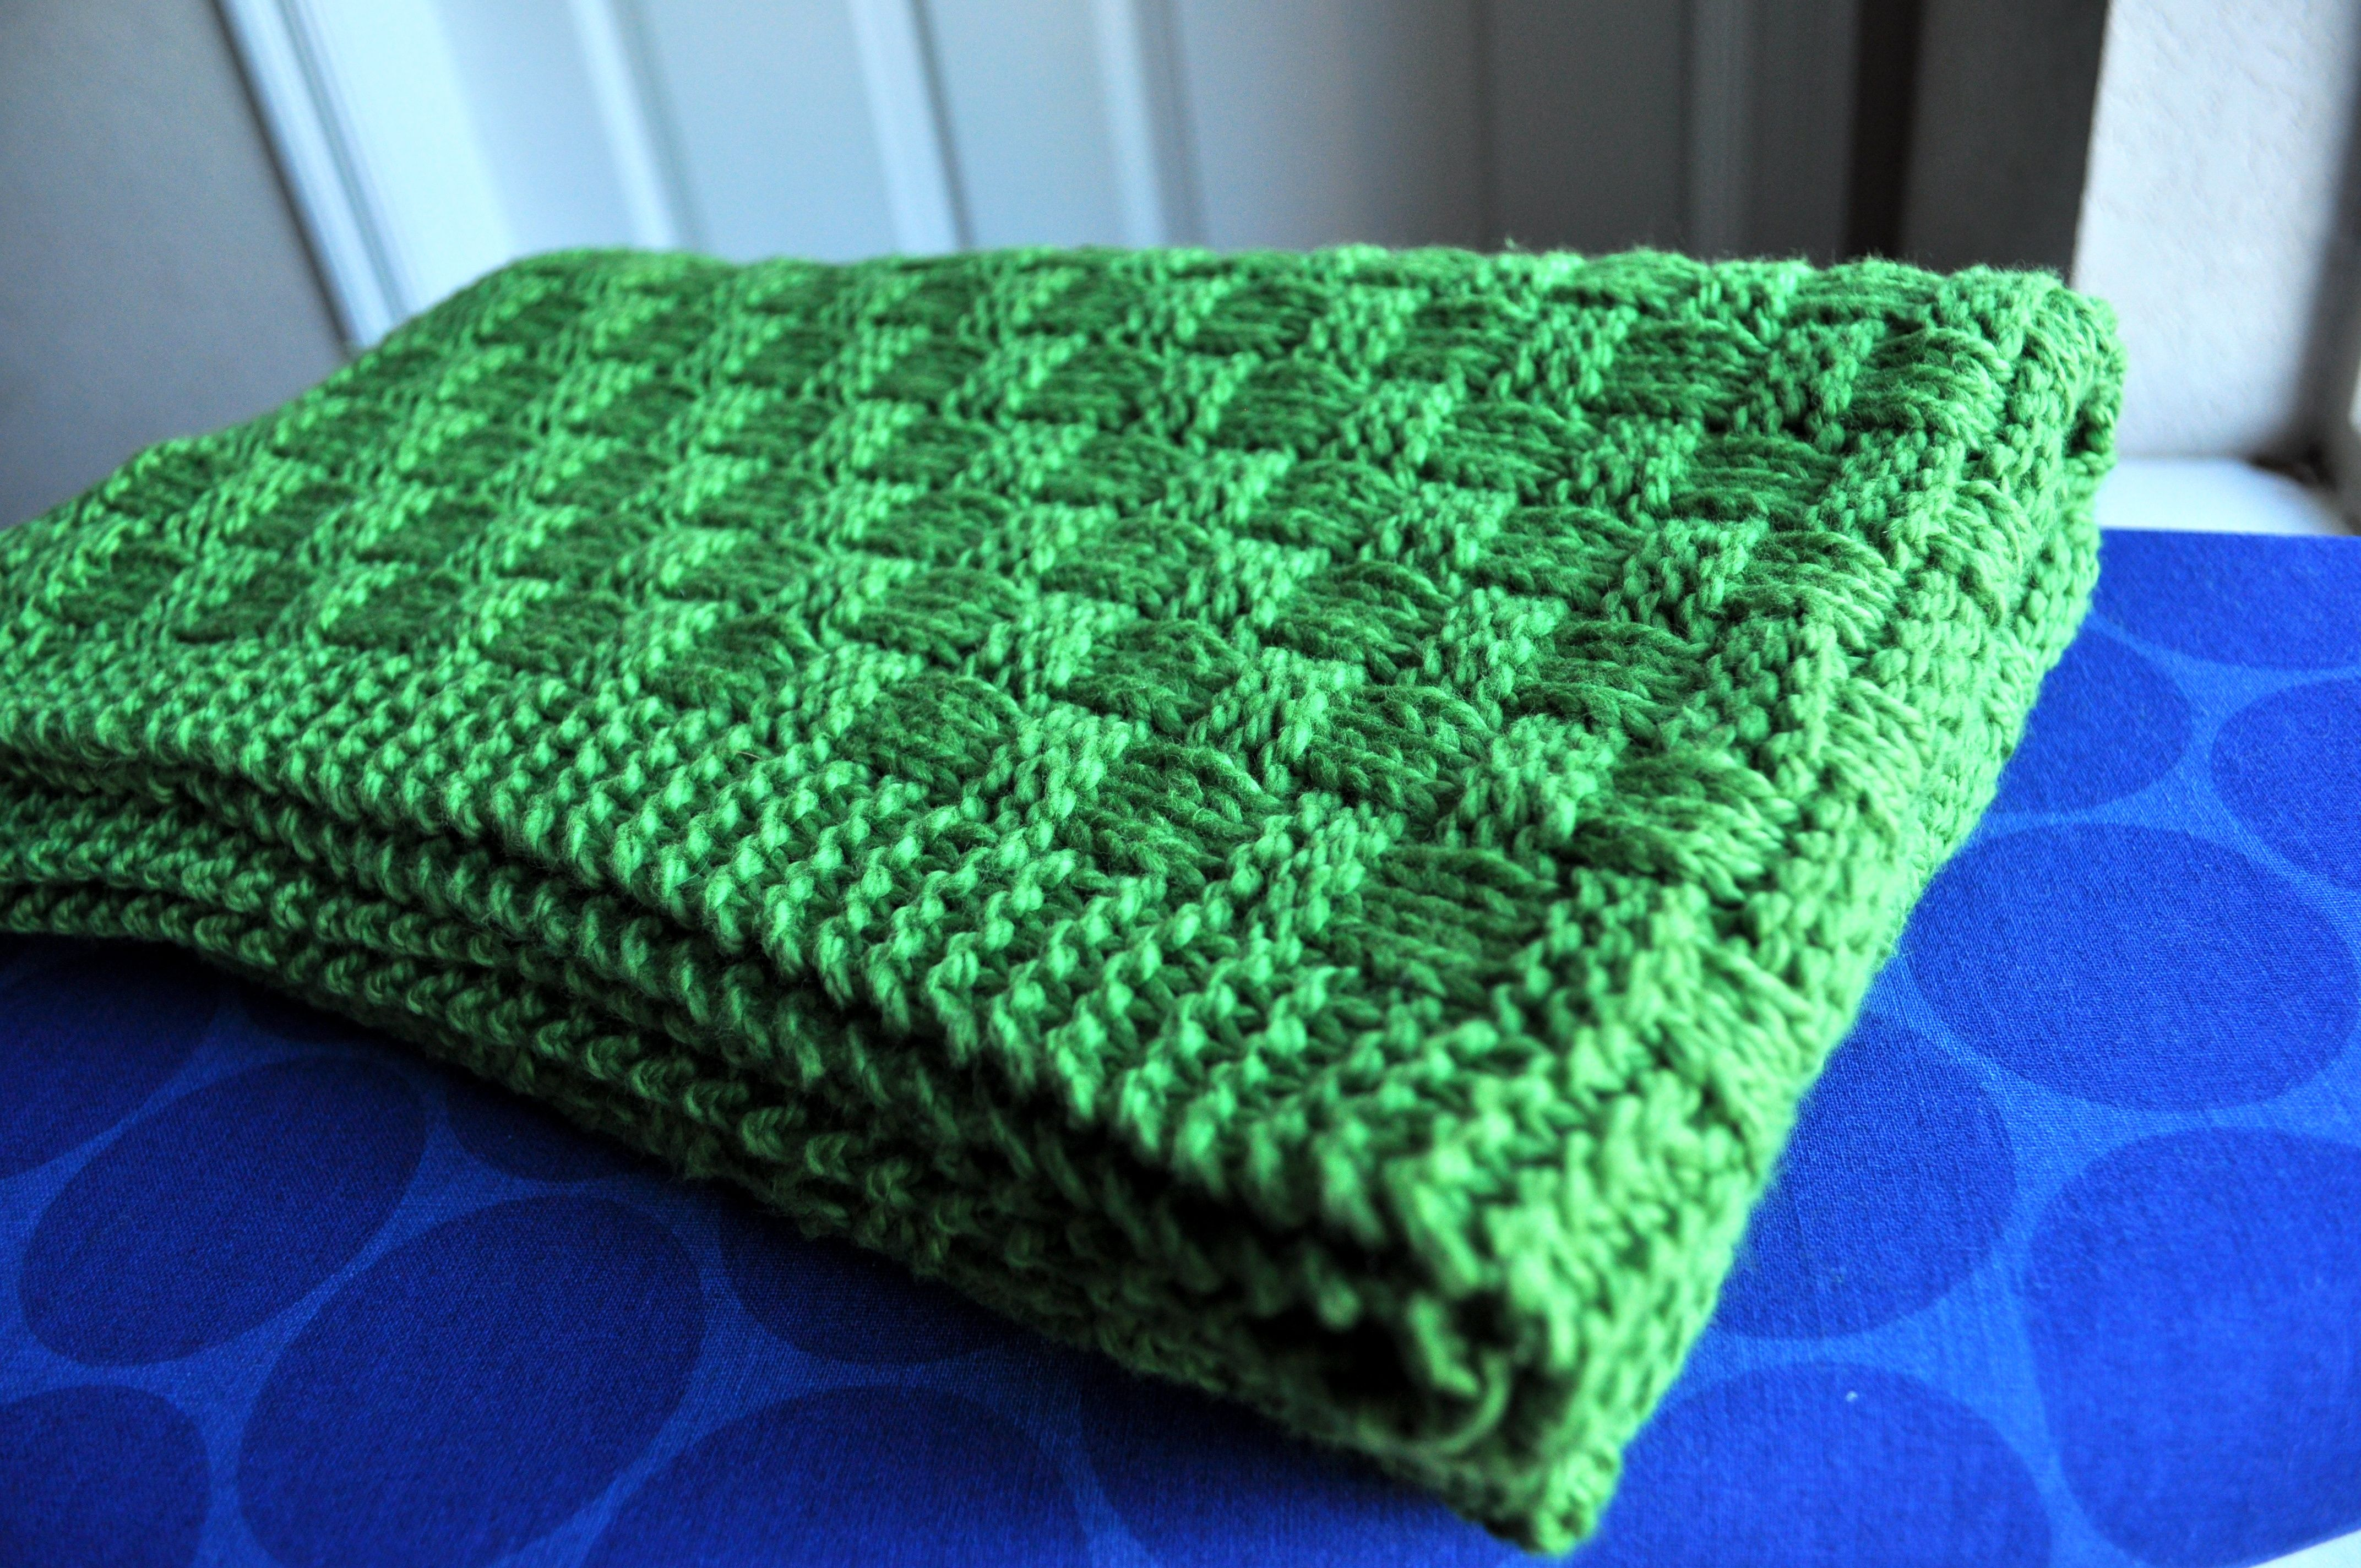 Knitted Baby Things | Knitted baby blankets, Knitted baby and Blanket